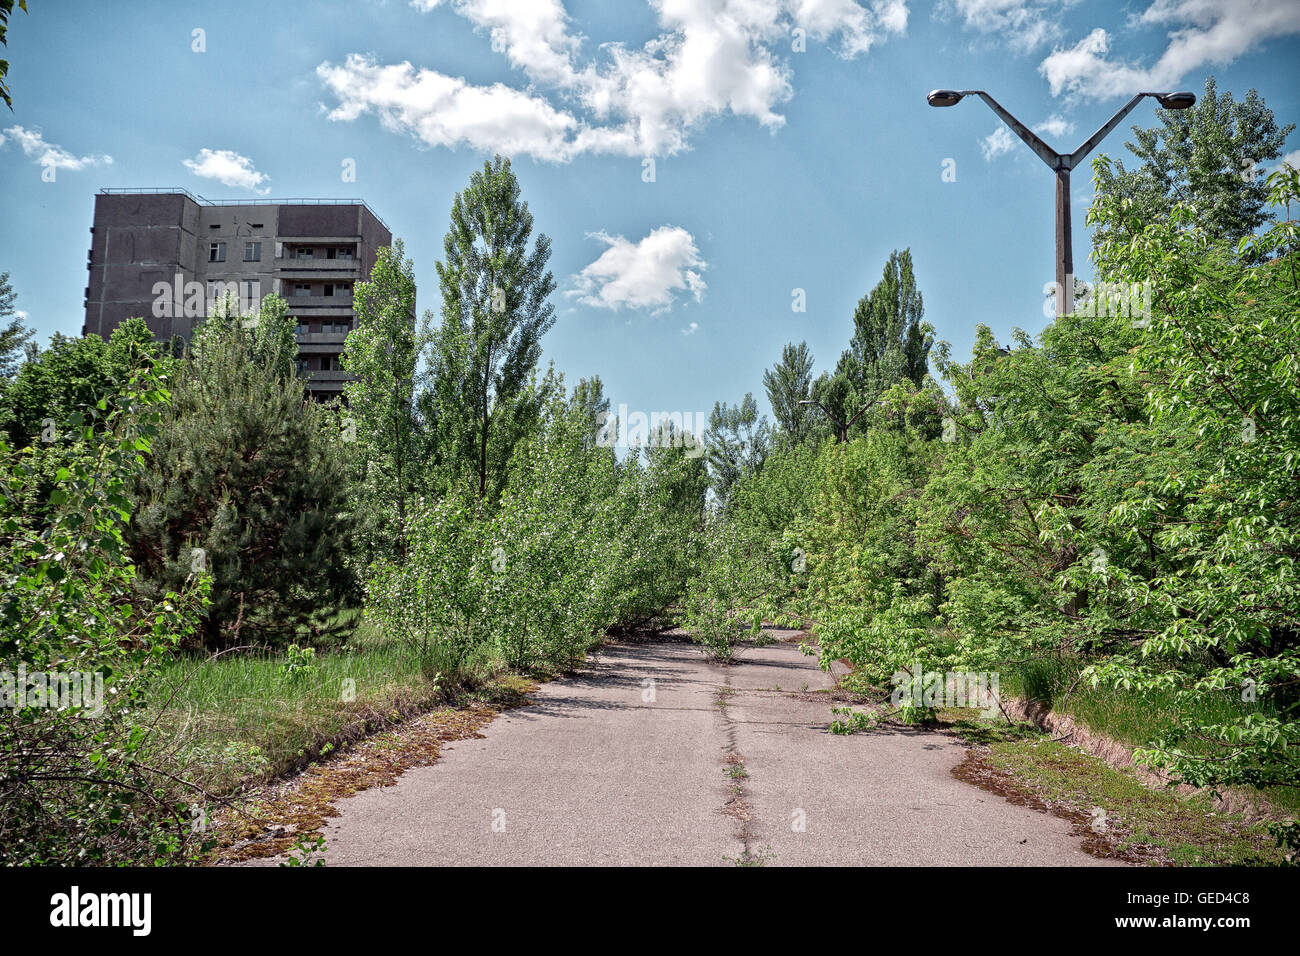 The abandoned town of Pripyat in the Chernobyl exclusion zone, Ukraine. - Stock Image